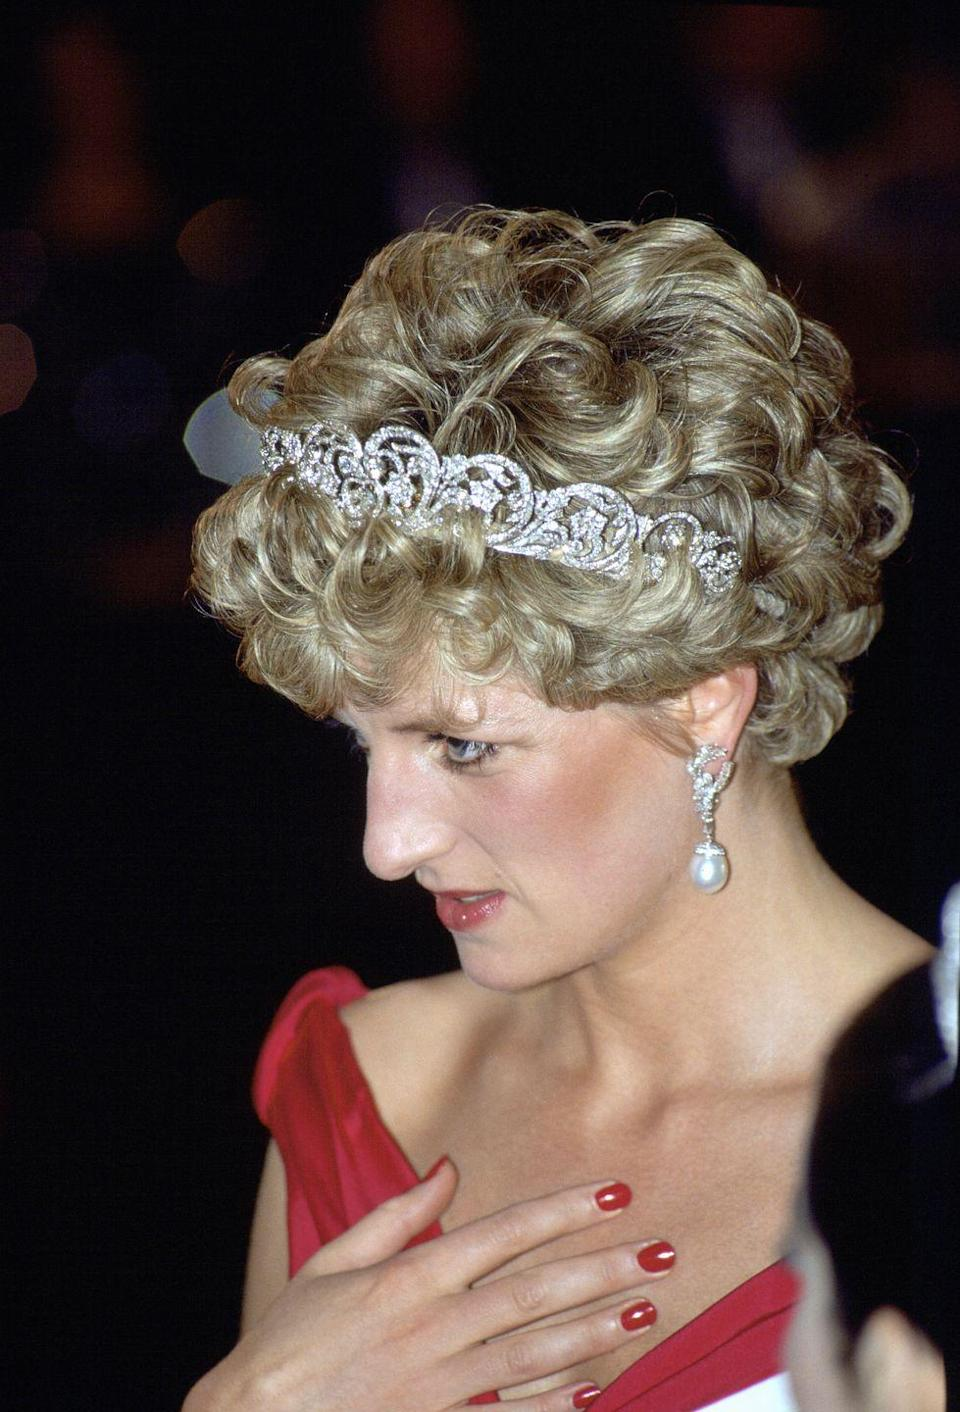 <p>It's common for the women in the royal family to wear neutral nail polish or no polish at all, per Queen Elizabeth's preference. But Princess Diana wasn't afraid to go bold with her polish choices.</p>